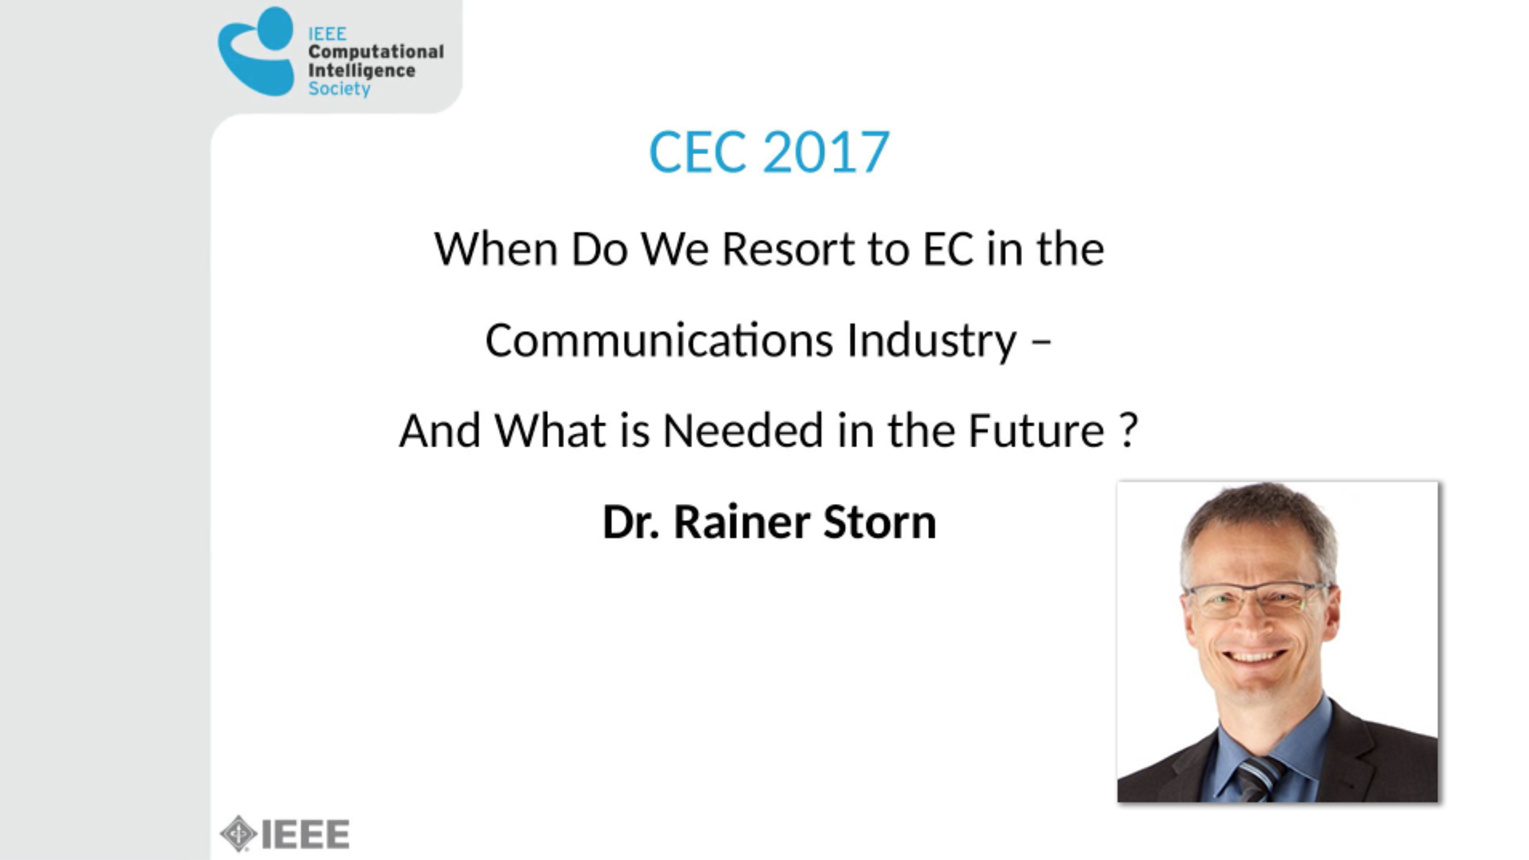 When Do We Resort to EC in the Communications Industry, and What is Needed in the Future? - IEEE Congress on Evolutionary Computation 2017